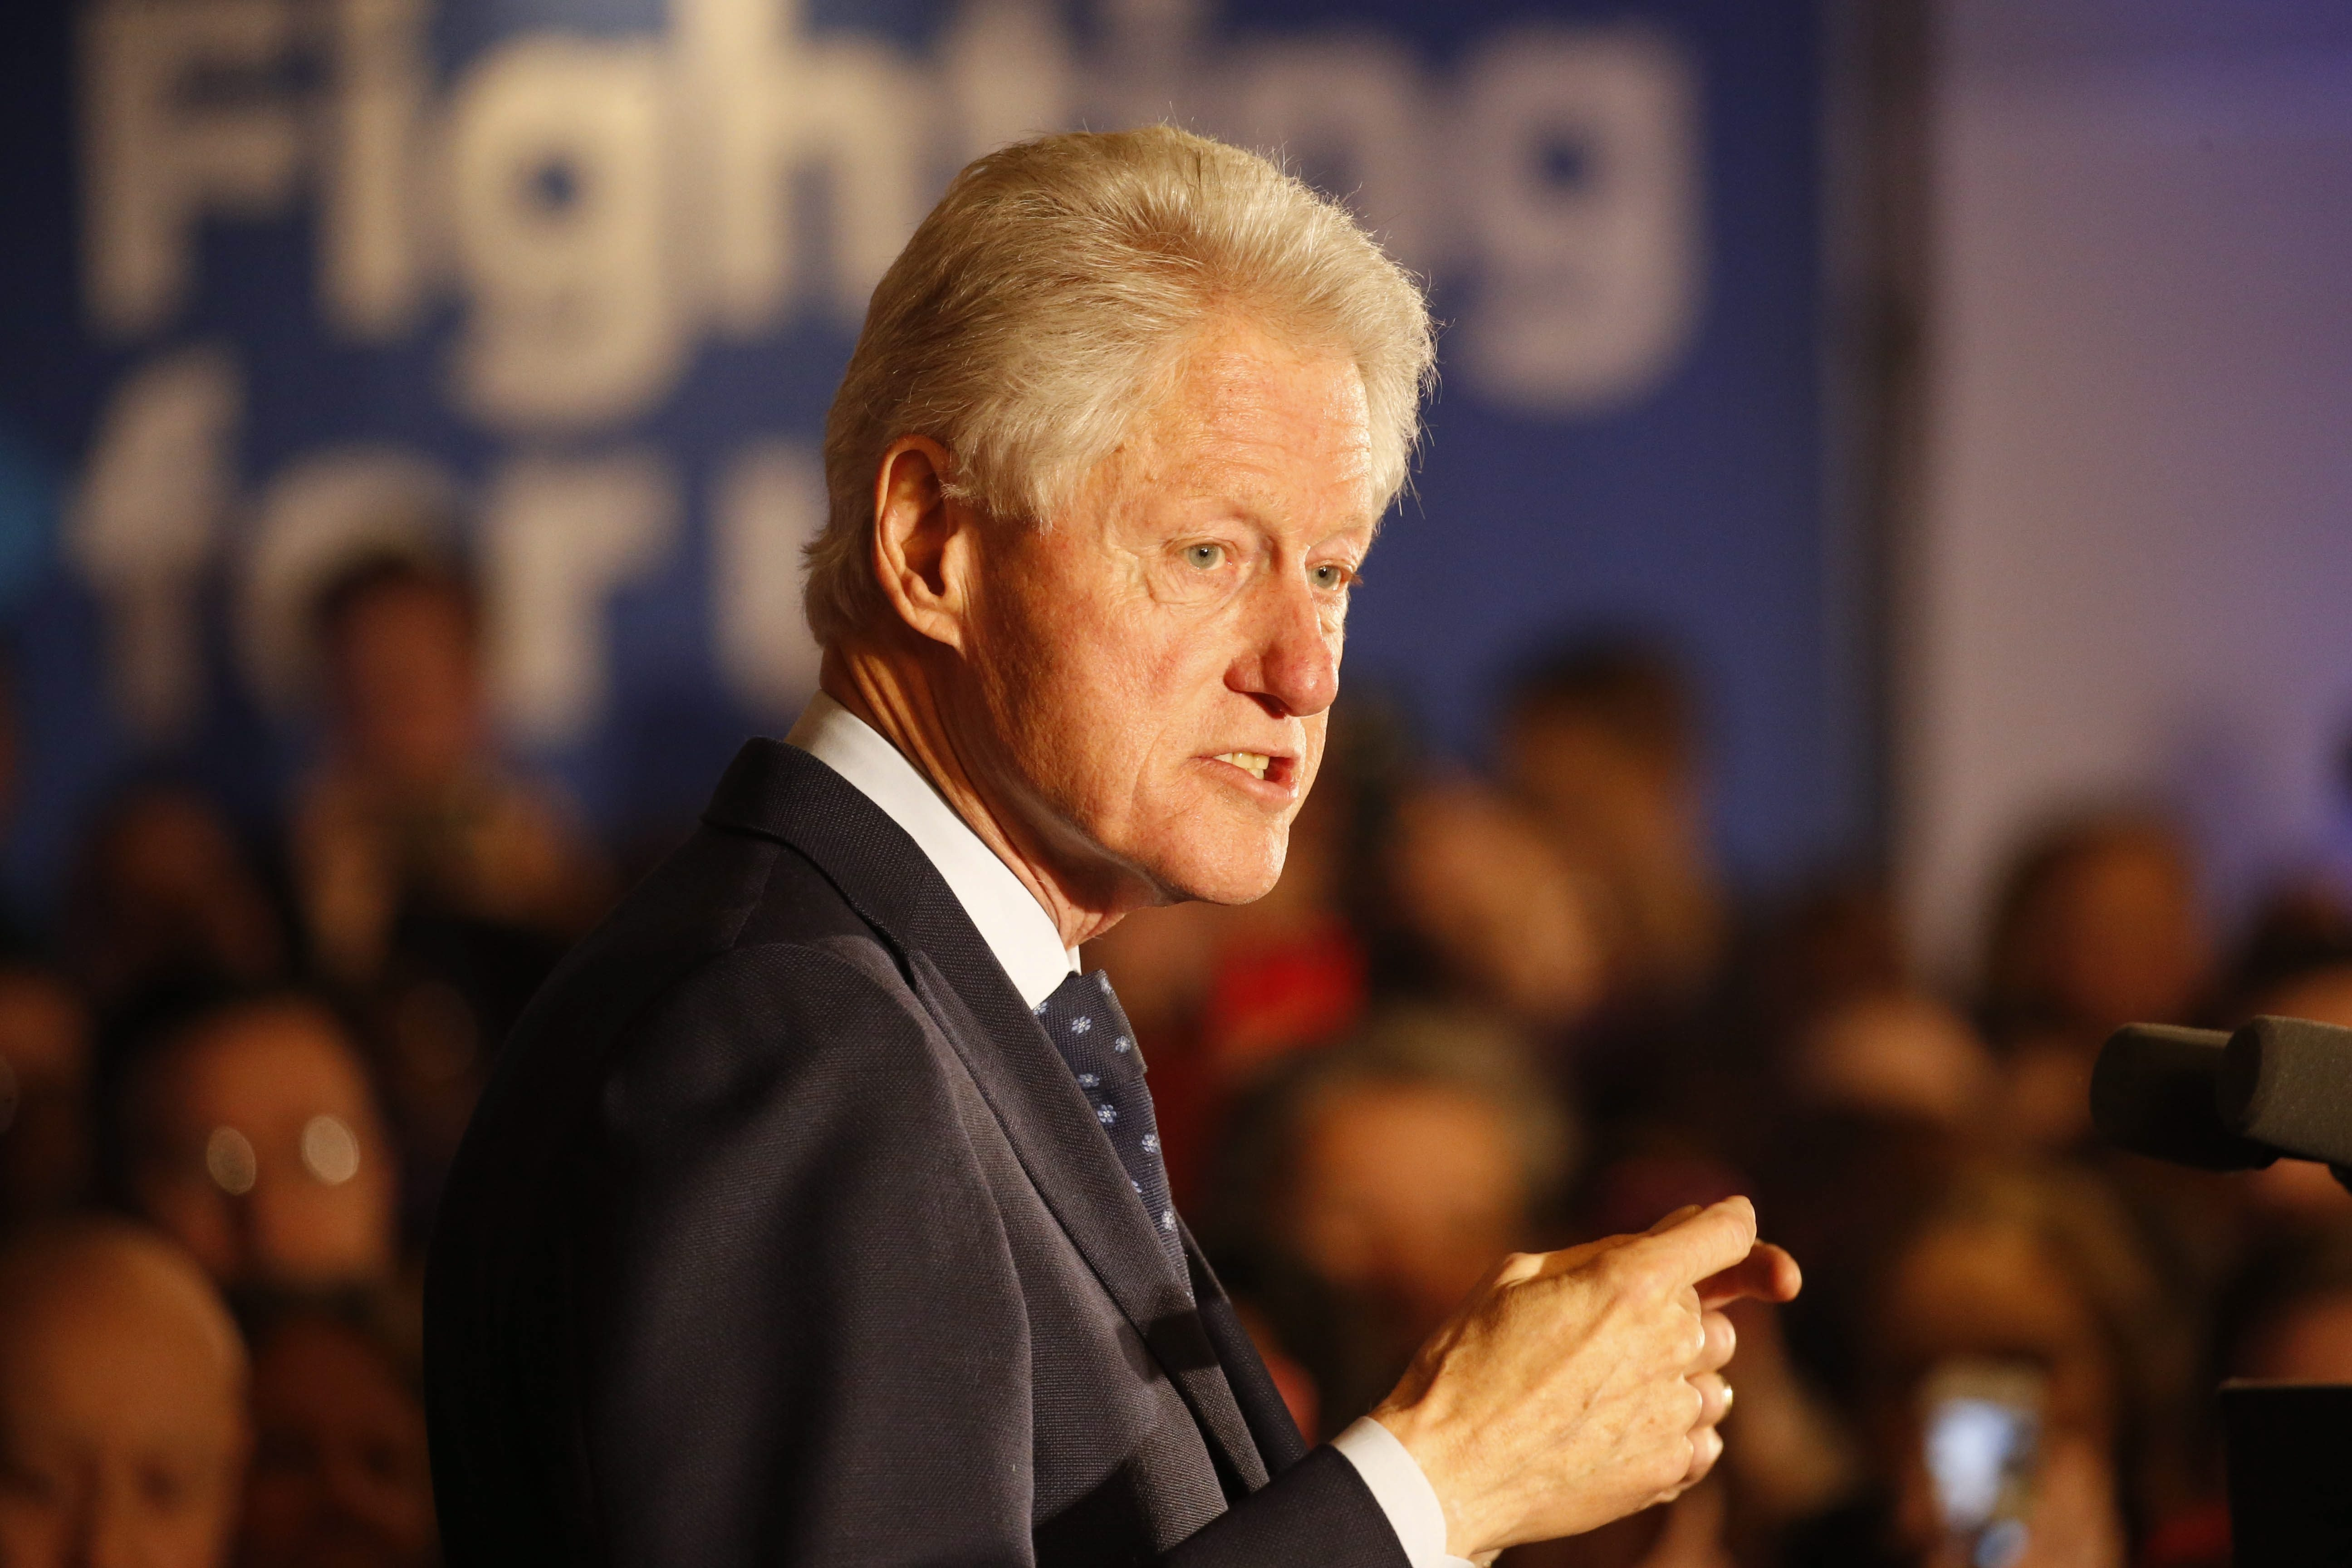 Former U.S. President Bill Clinton speaks during his first campaign trip to Buffalo on behalf of his wife at Grapevine Banquets in Depew on April 5. (Derek Gee/News file photo)